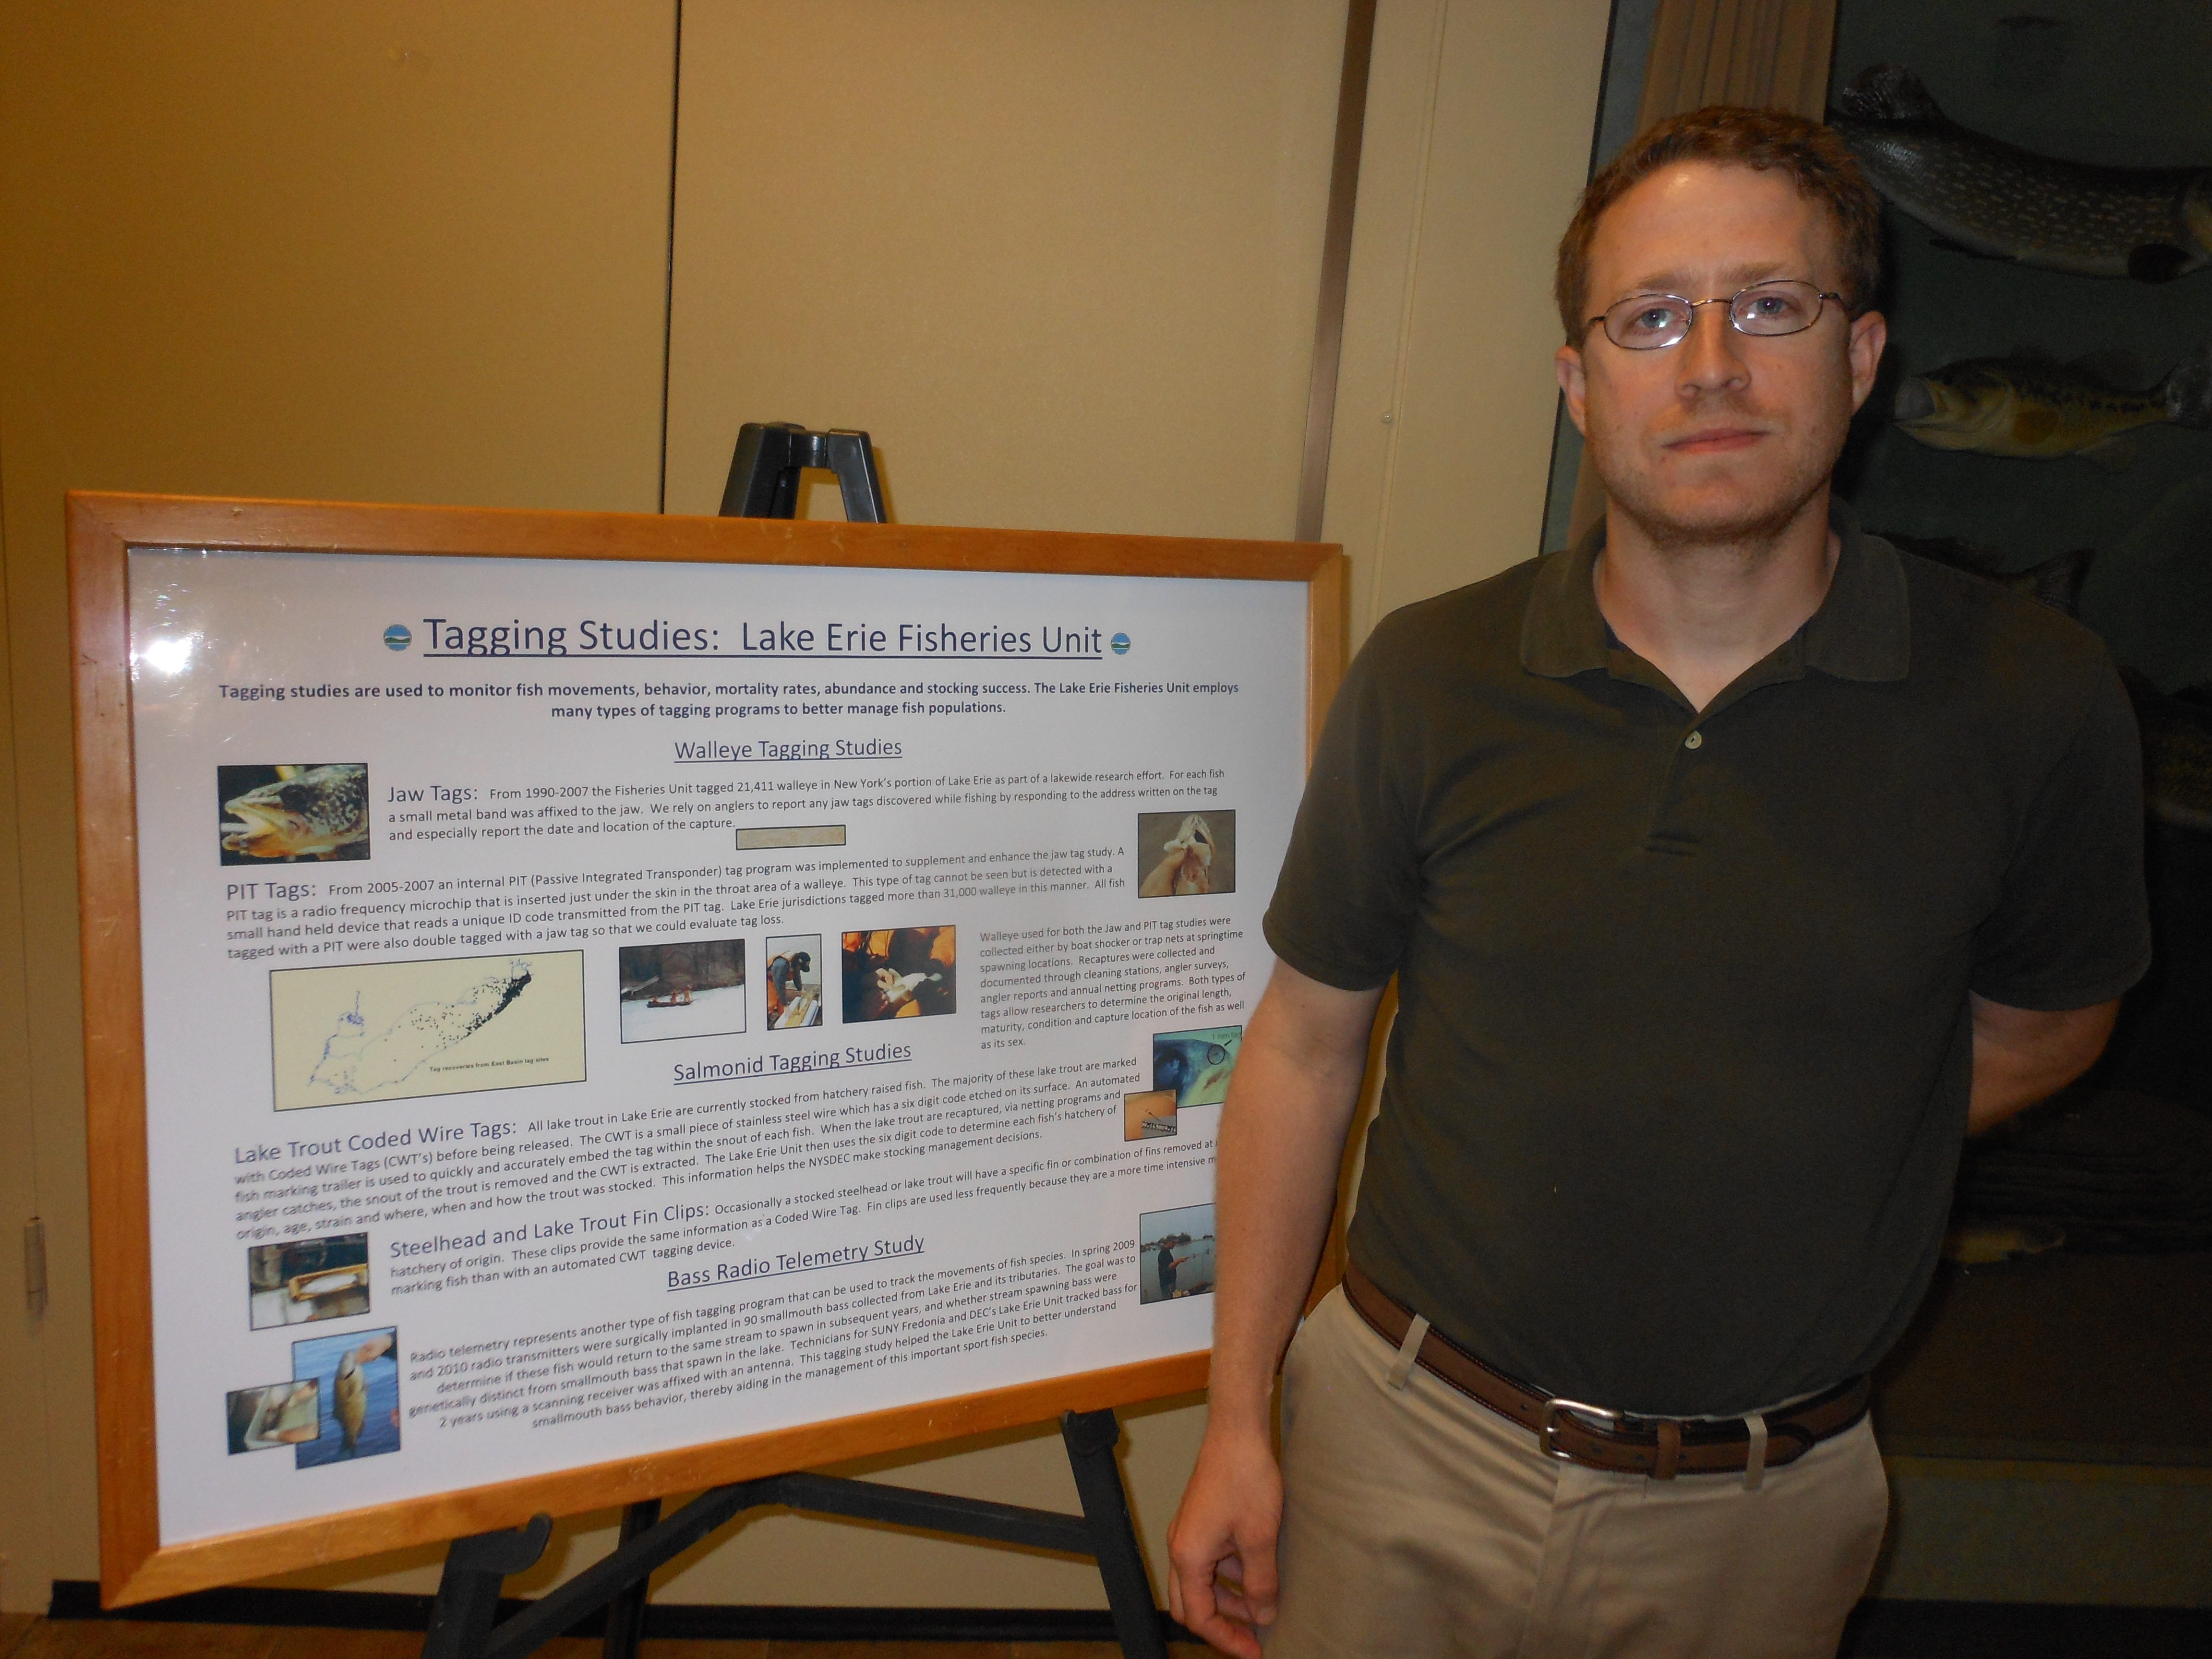 DEC senior aquatic biologist Jason Robinson explained the tracking of walleye movements in Lake Erie waters during an Angler Outreach program at Woodlawn Beach State Park on Tuesday evening.